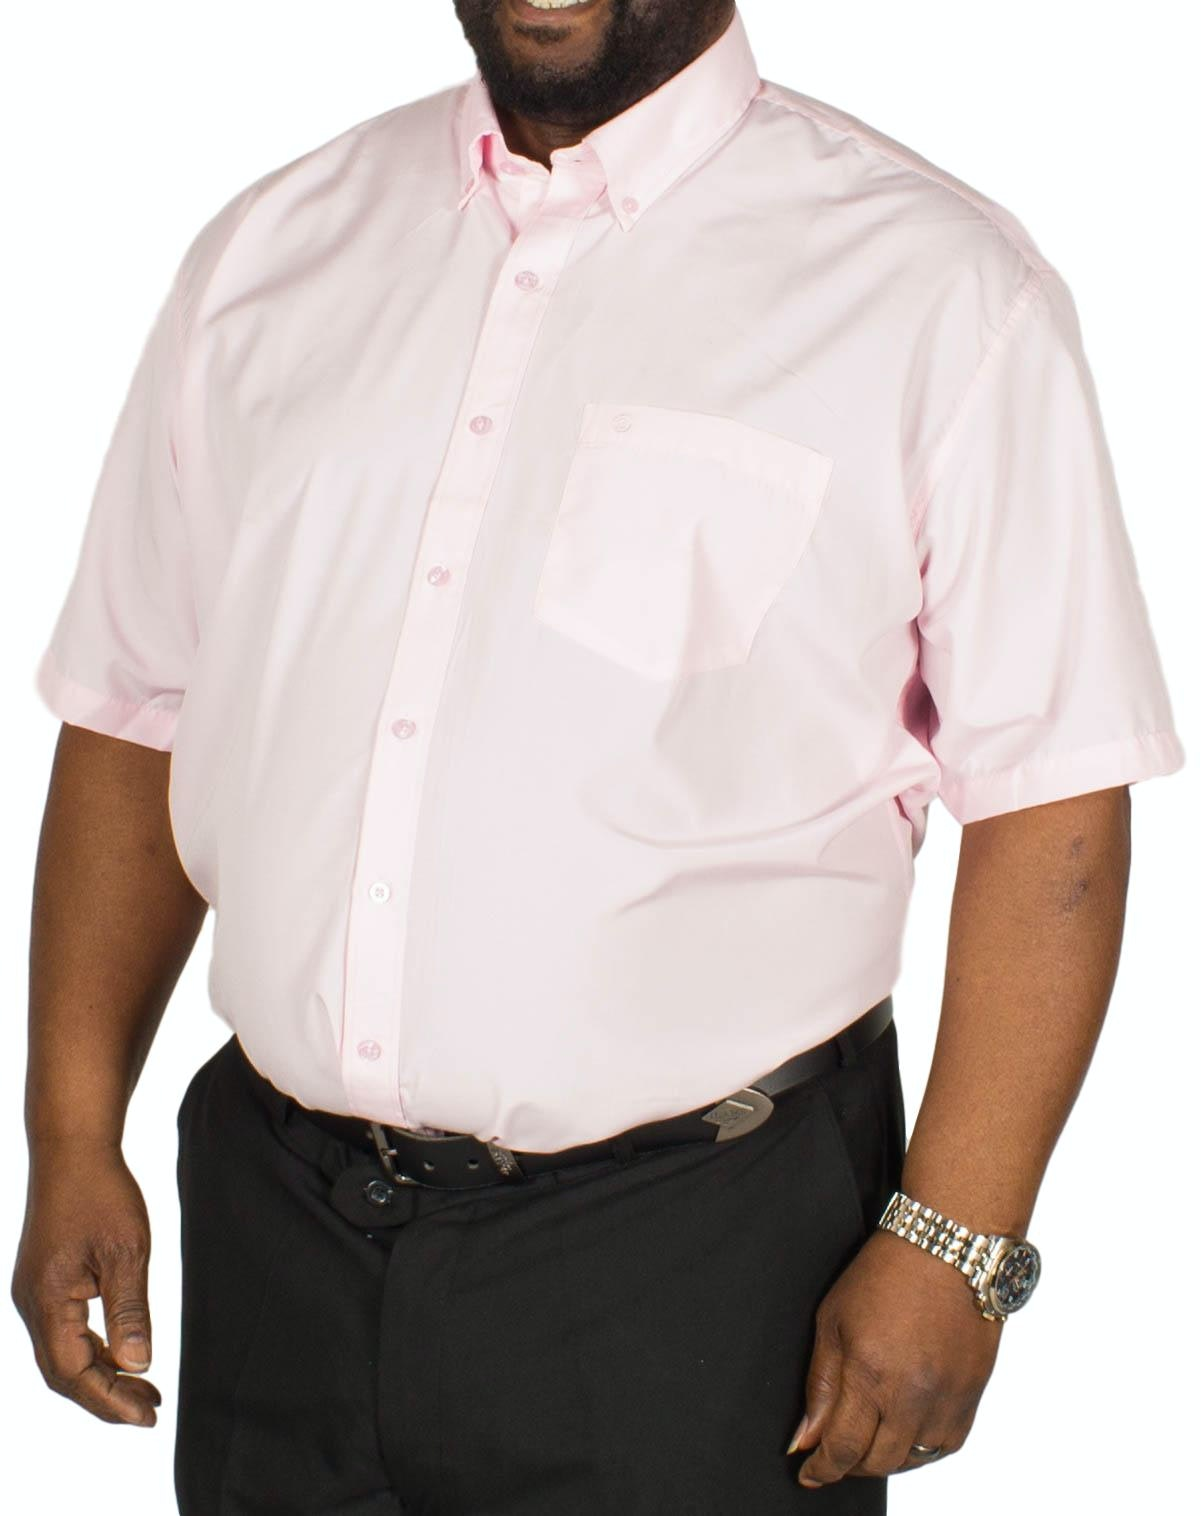 Espionage Plain P.V. Short Sleeve Shirt Pink